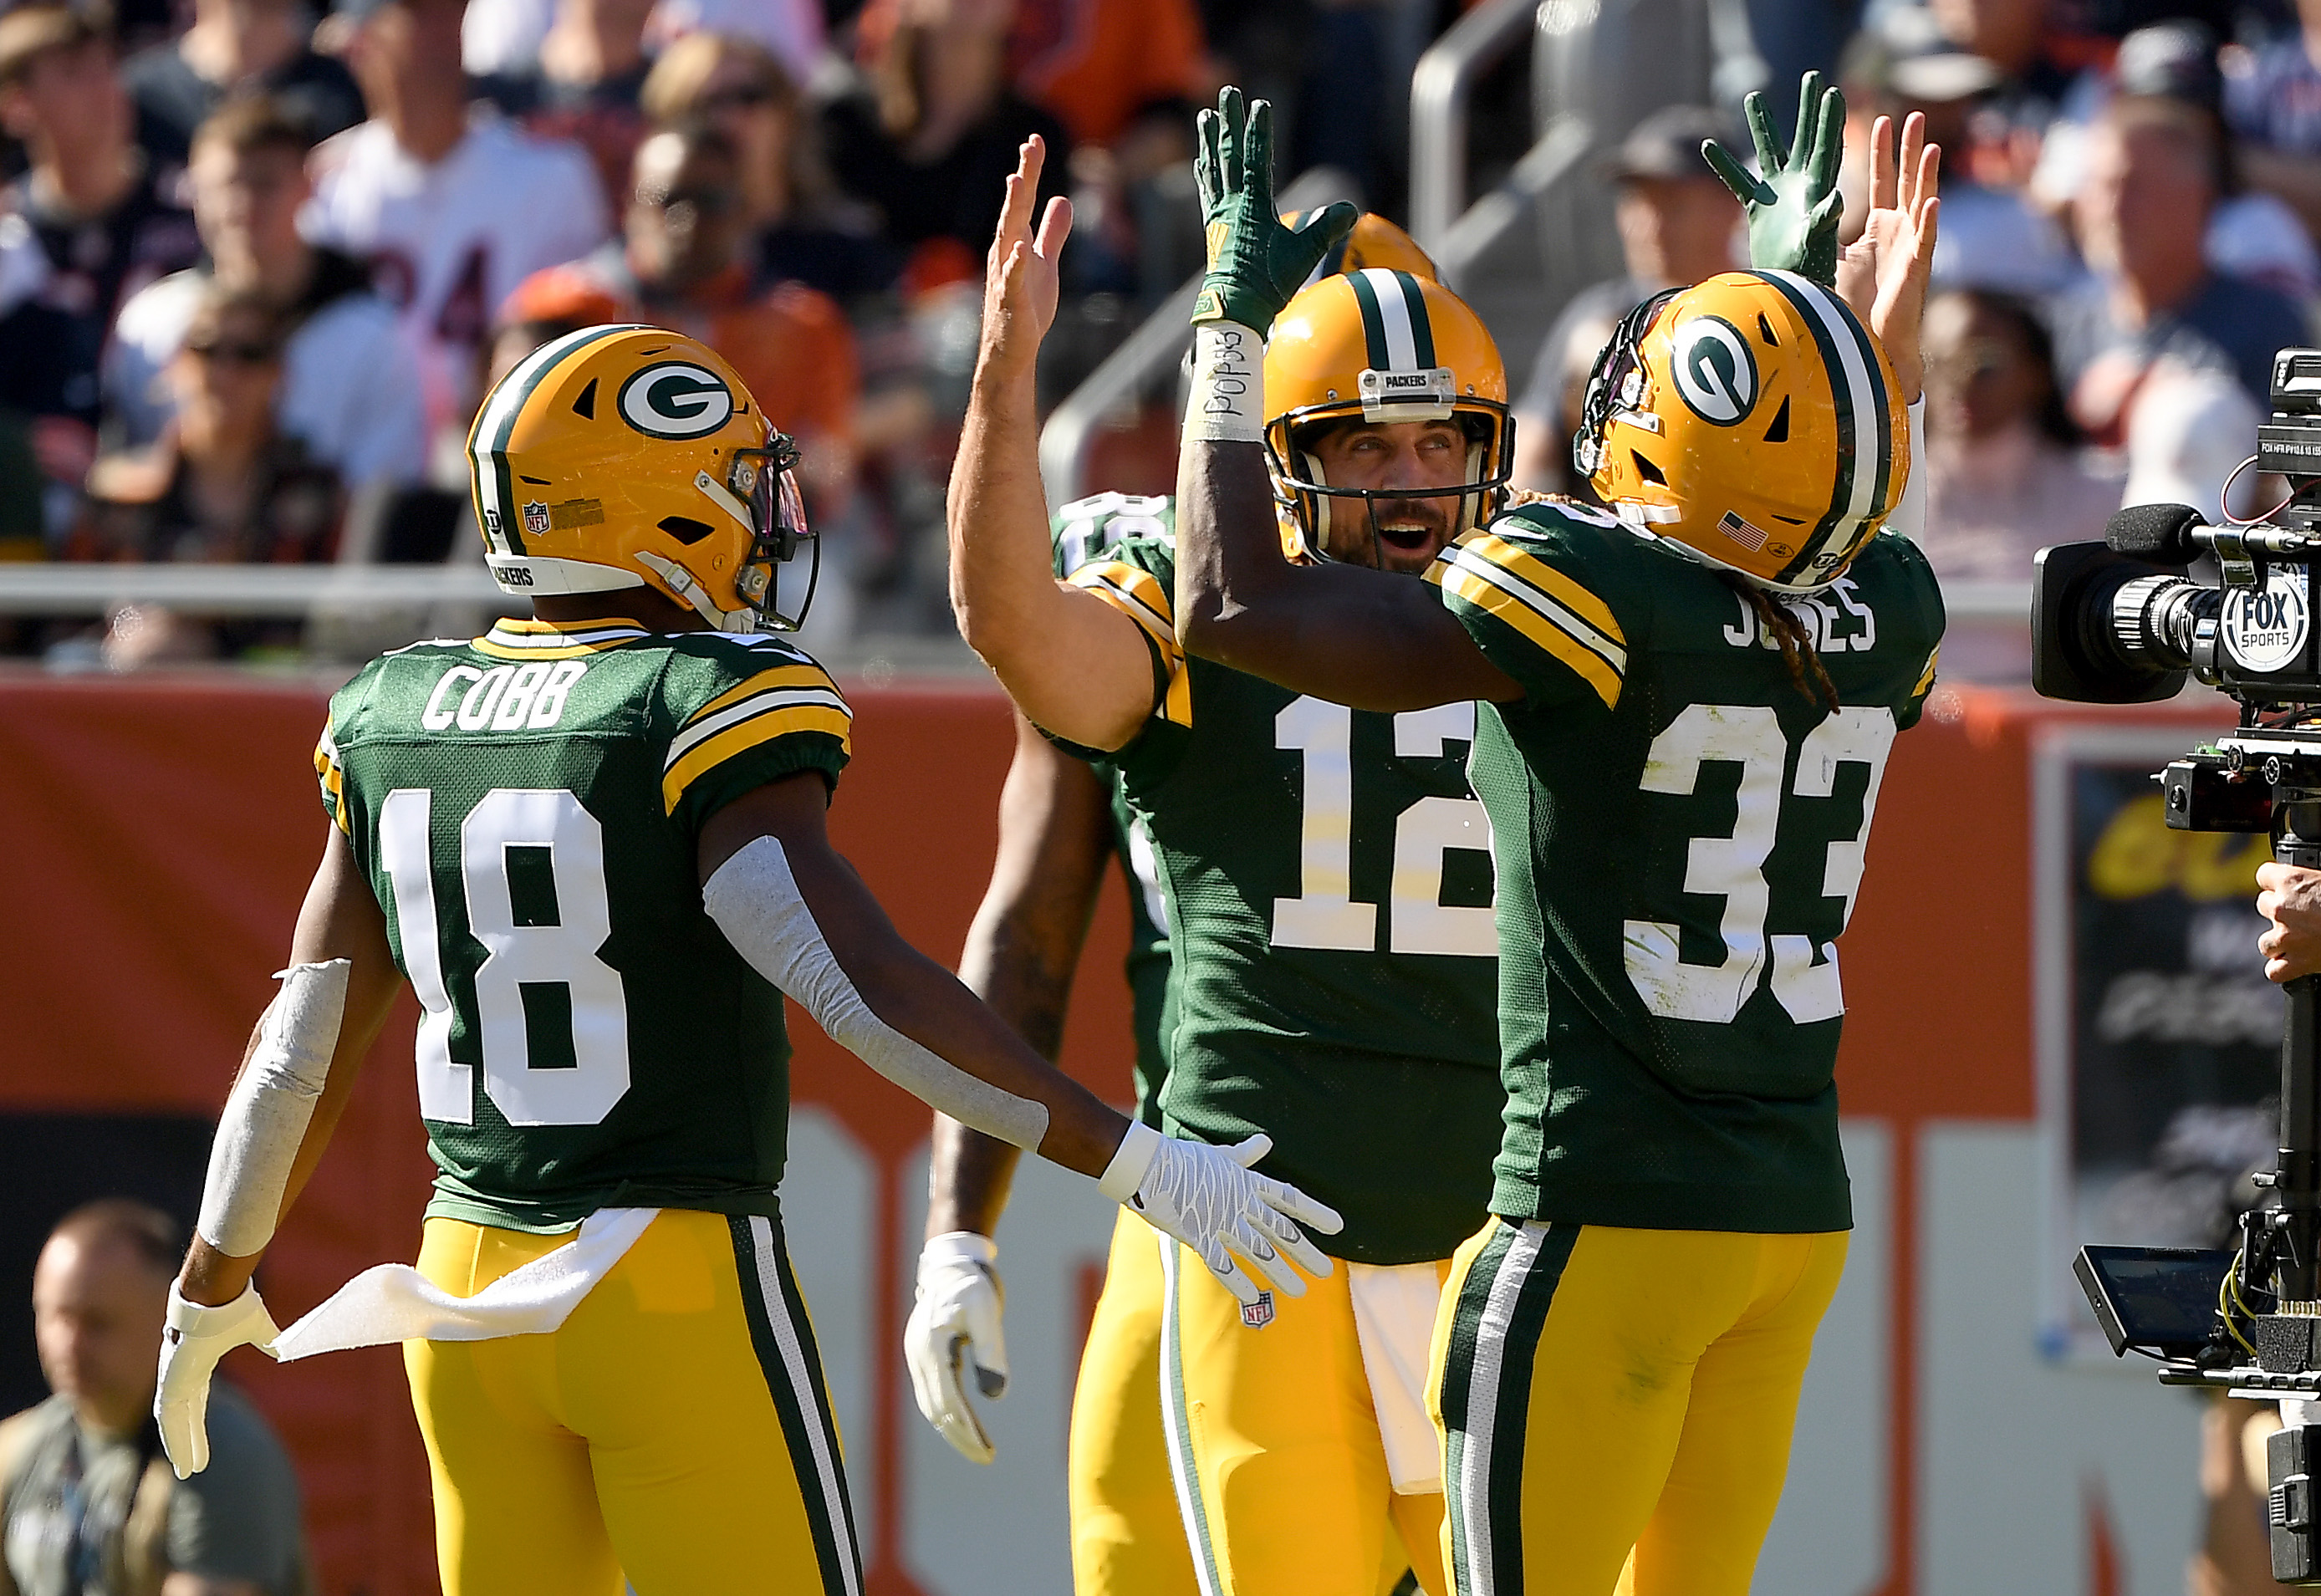 Aaron Rodgers (12) celebrates with Randall Cobb (18) and Aaron Jones (33) after scoring a touchdown in the fourth quarter against the Bears.